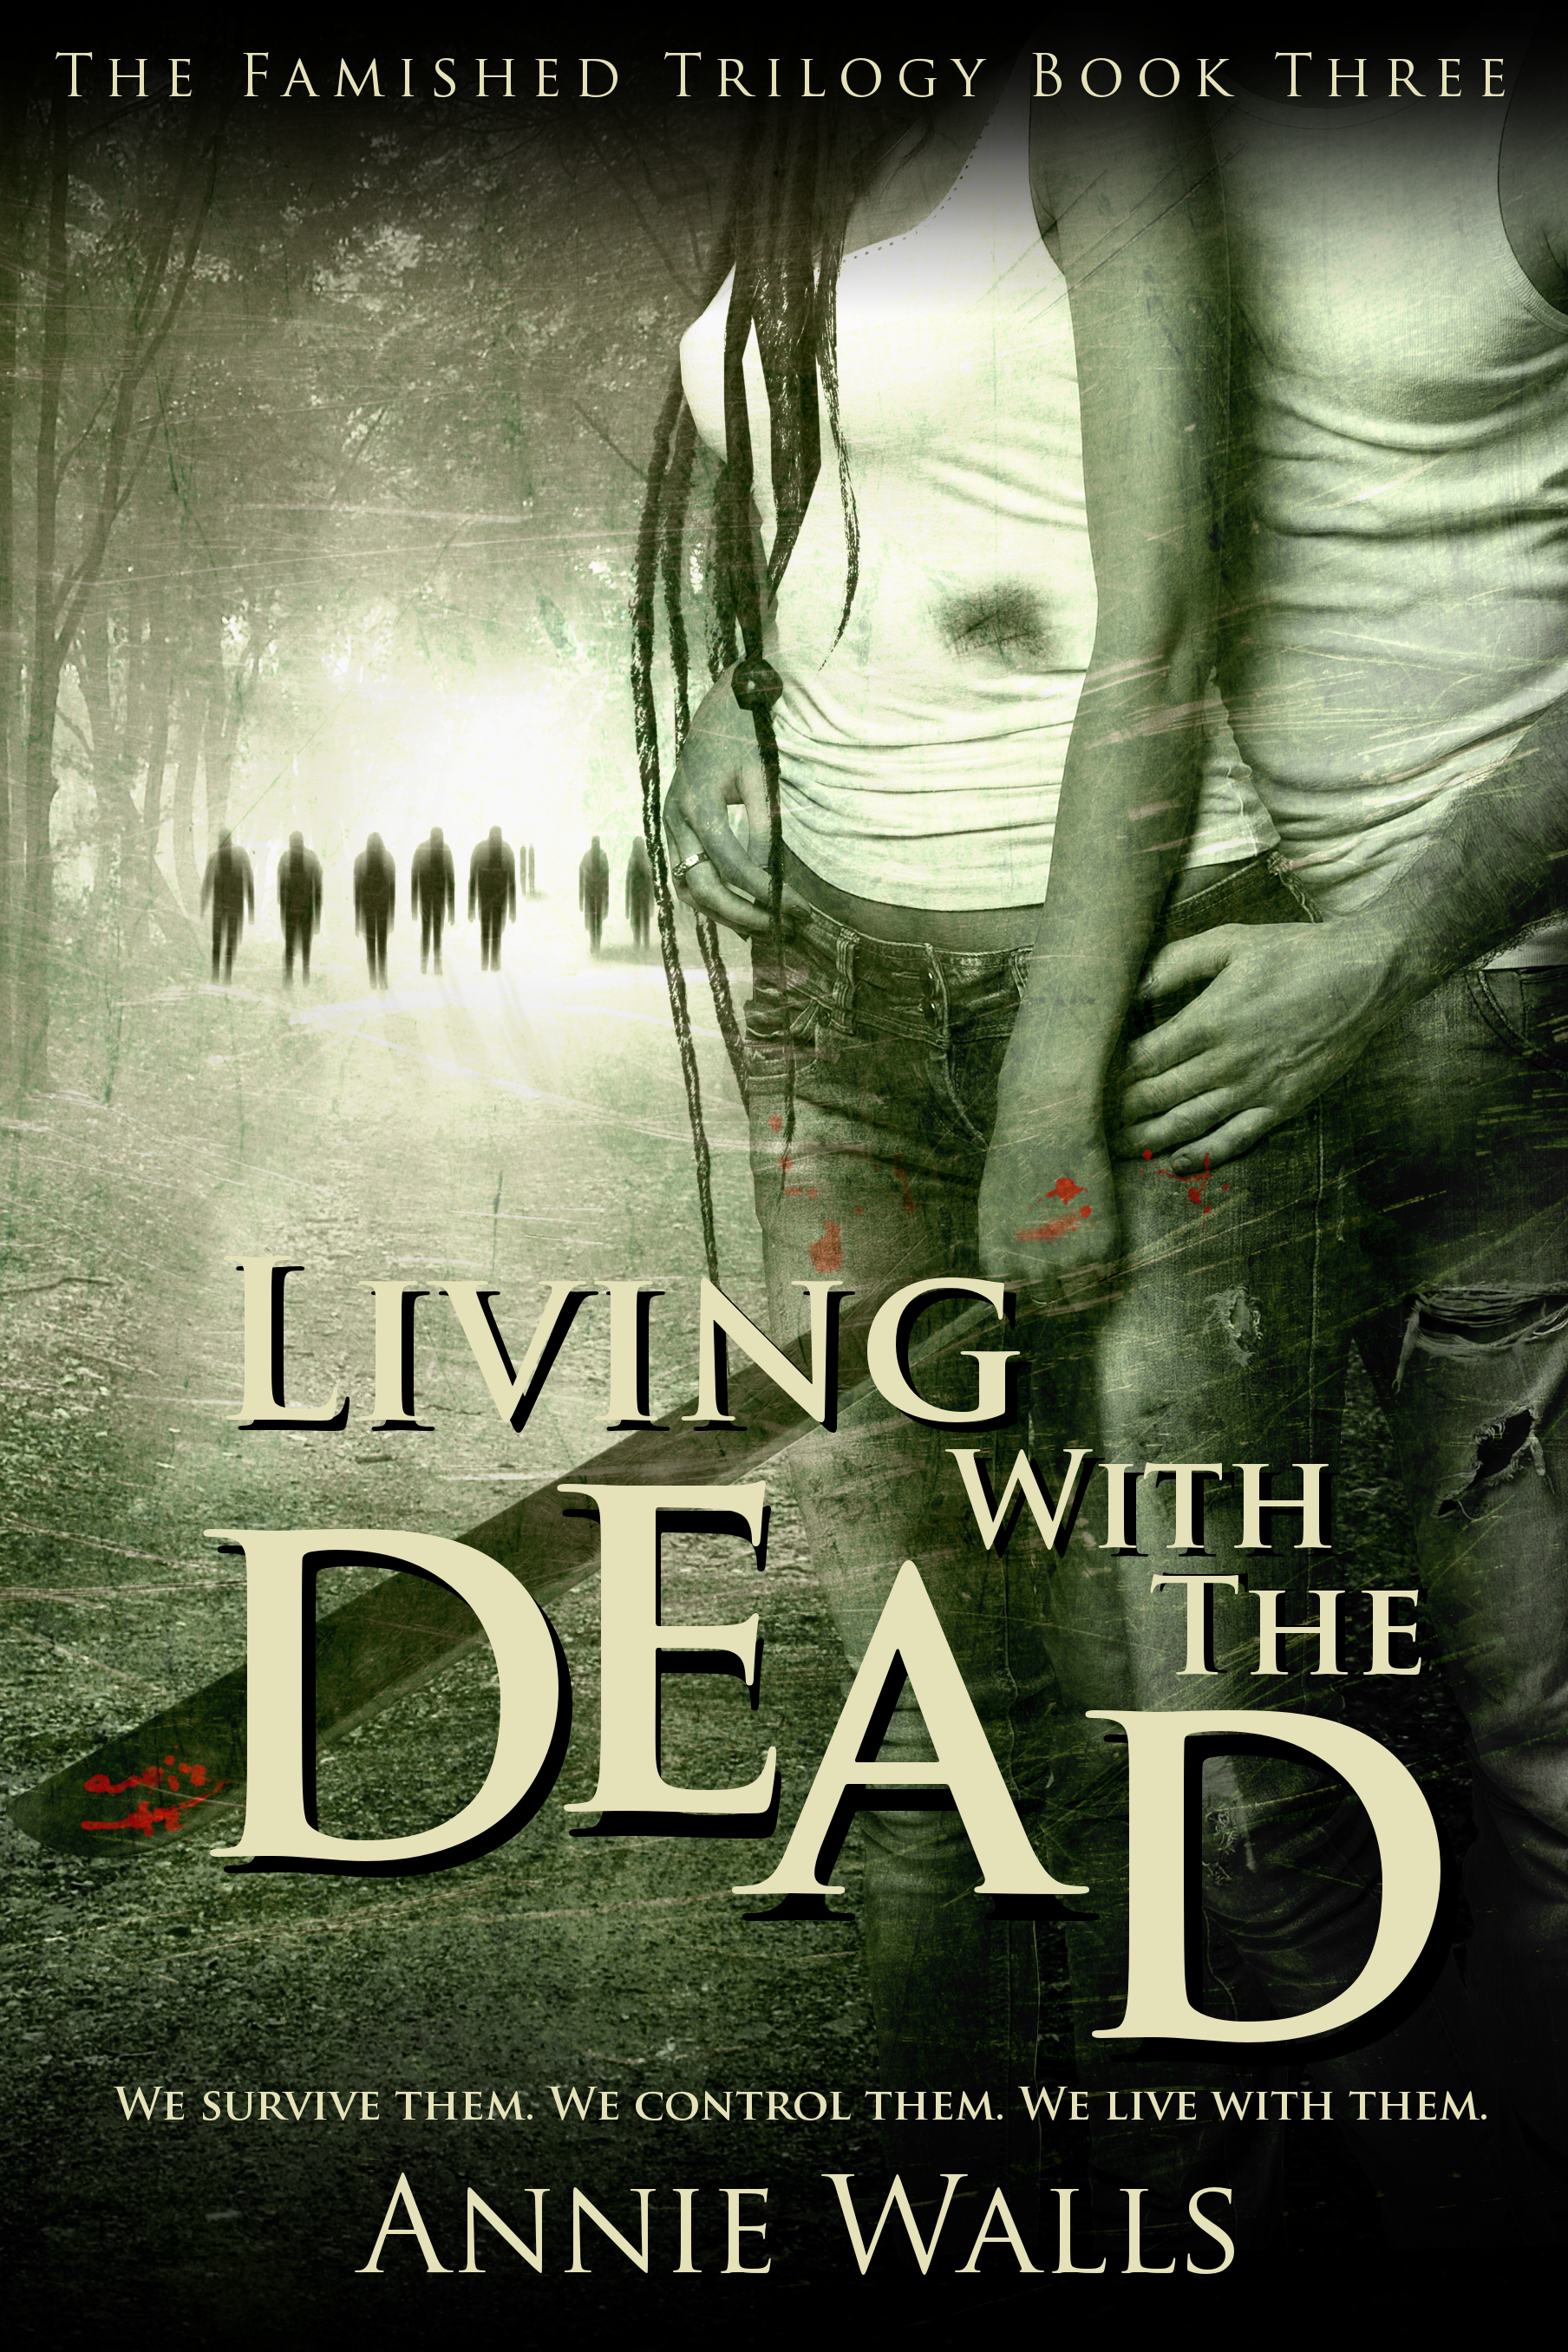 Living with the Dead by Annie Walls – Cover Revealed!